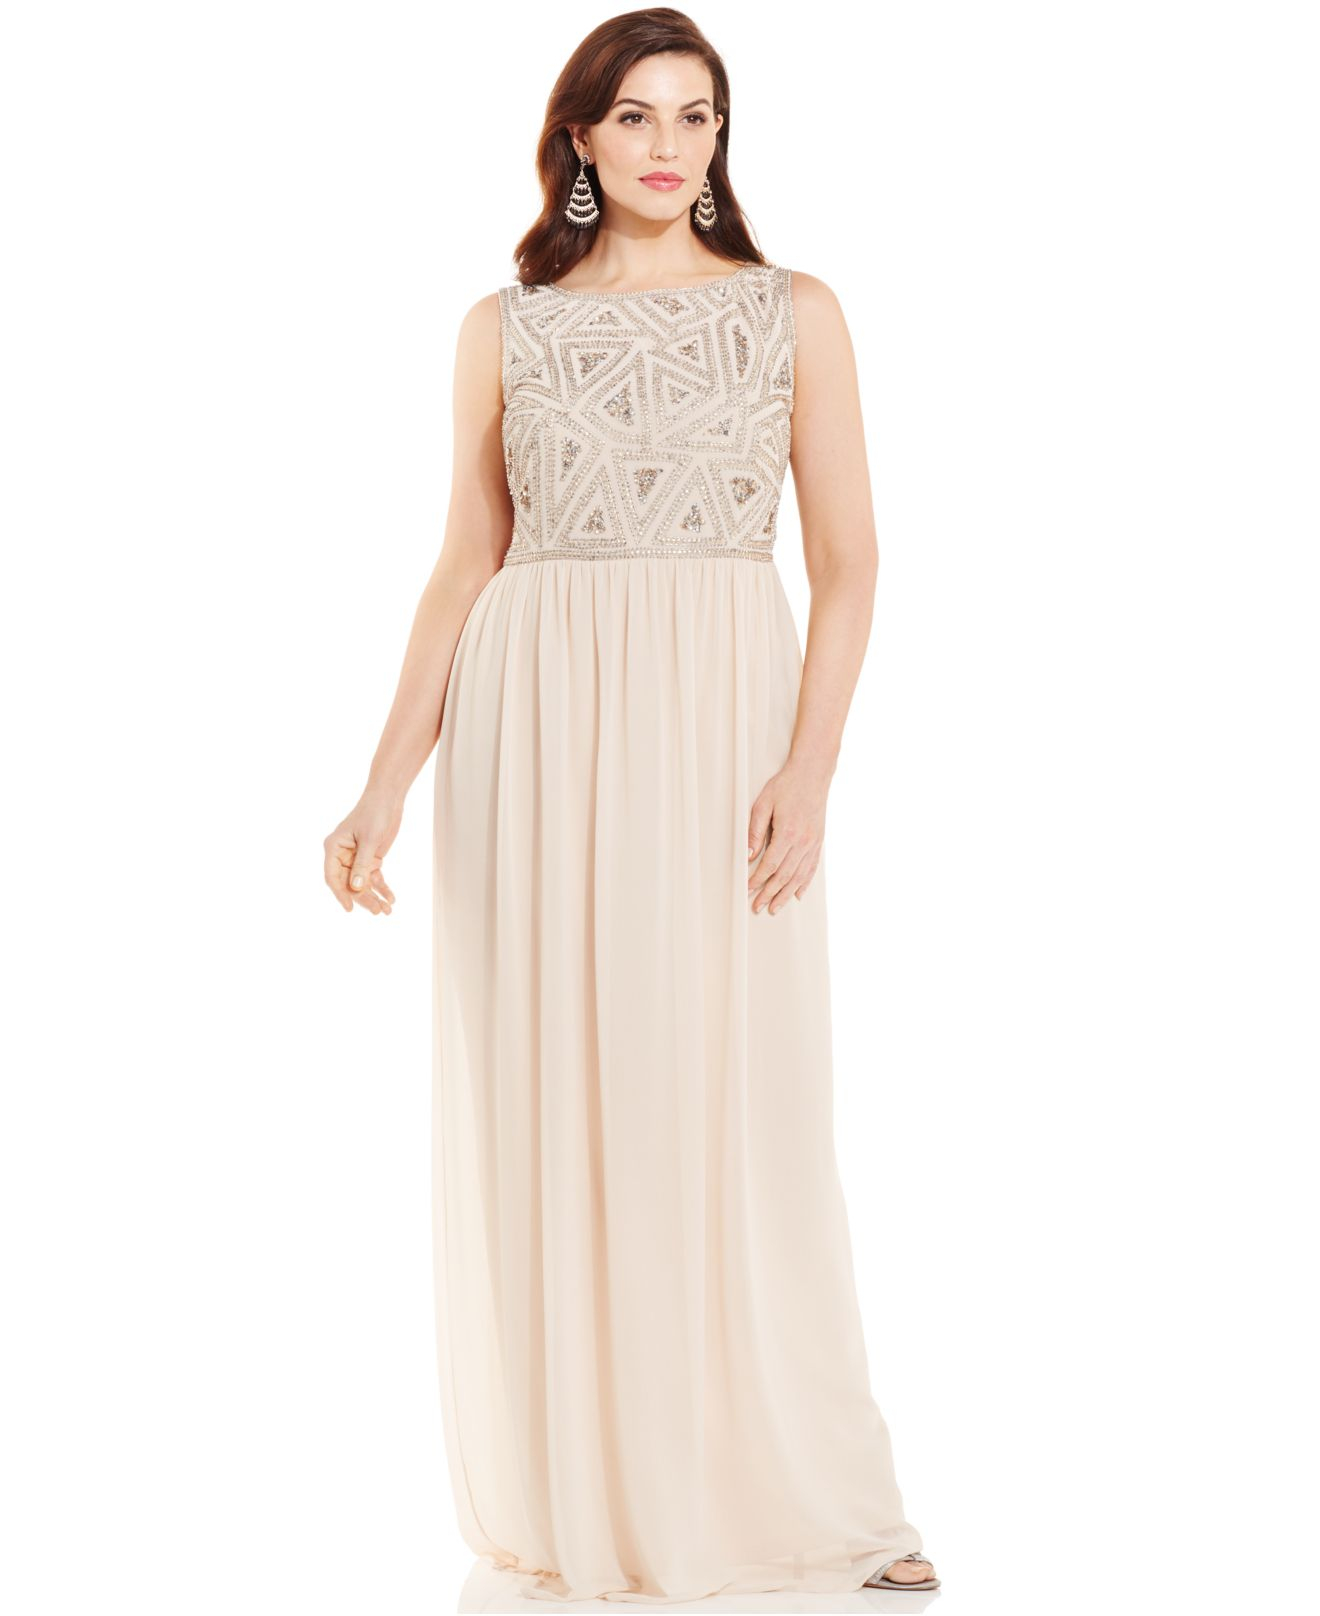 Lyst - Adrianna Papell Plus Size Embellished Gown in Pink